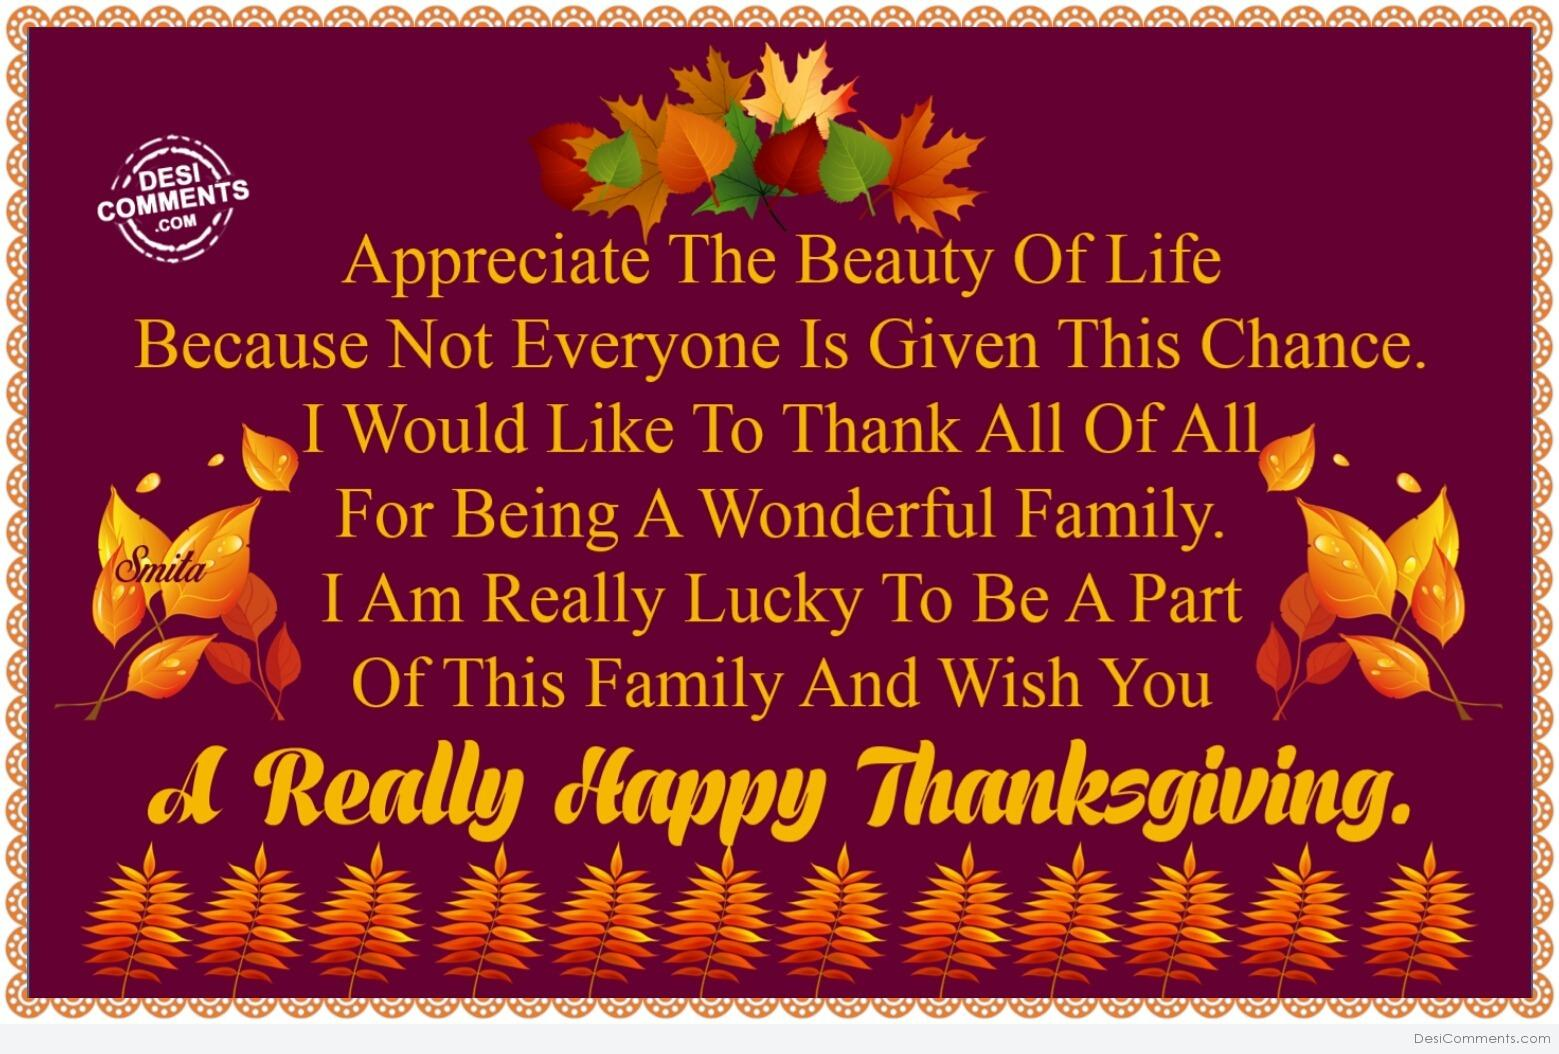 Wish You A Really Happy Thanksgiving Desicomments Com